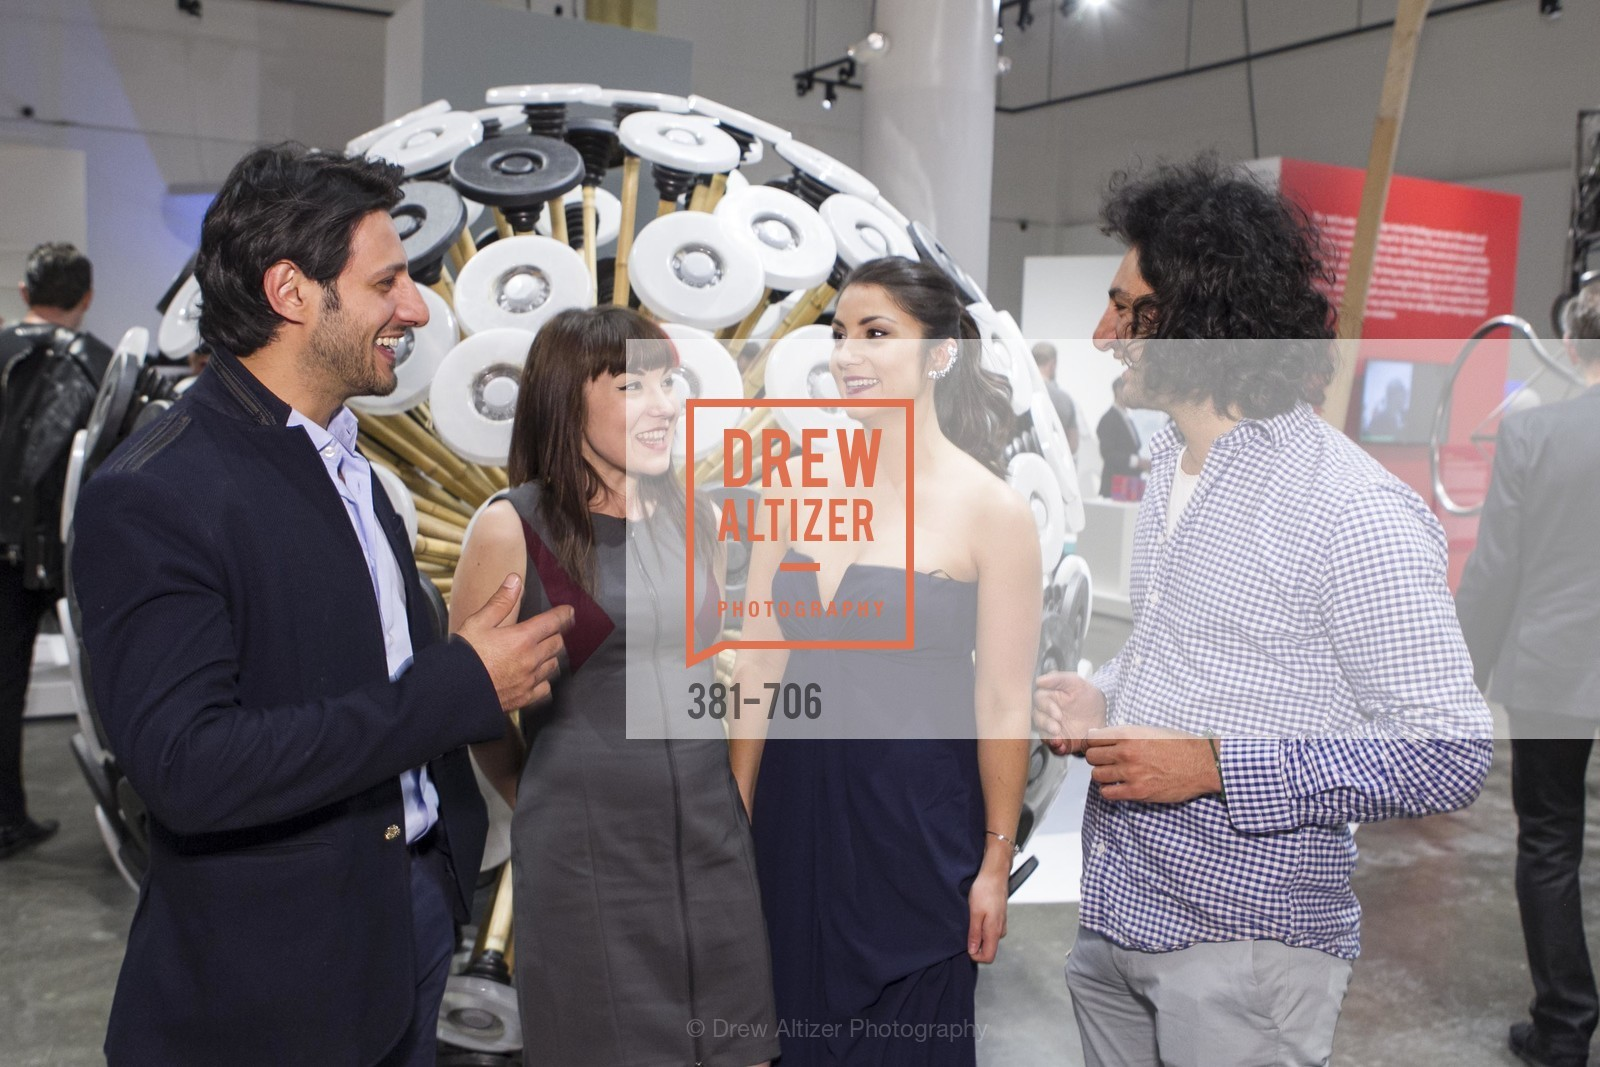 Mahmud Hassani, Ariel Zaccheo, Sara Dermody, Massoud Hassani, Exhibit Opening at the MUSEUM OF CRAFT AND DESIGN - Hands Off: New Dutch Design at the Confluence of Technology & Craft, US, May 8th, 2015,Drew Altizer, Drew Altizer Photography, full-service agency, private events, San Francisco photographer, photographer california